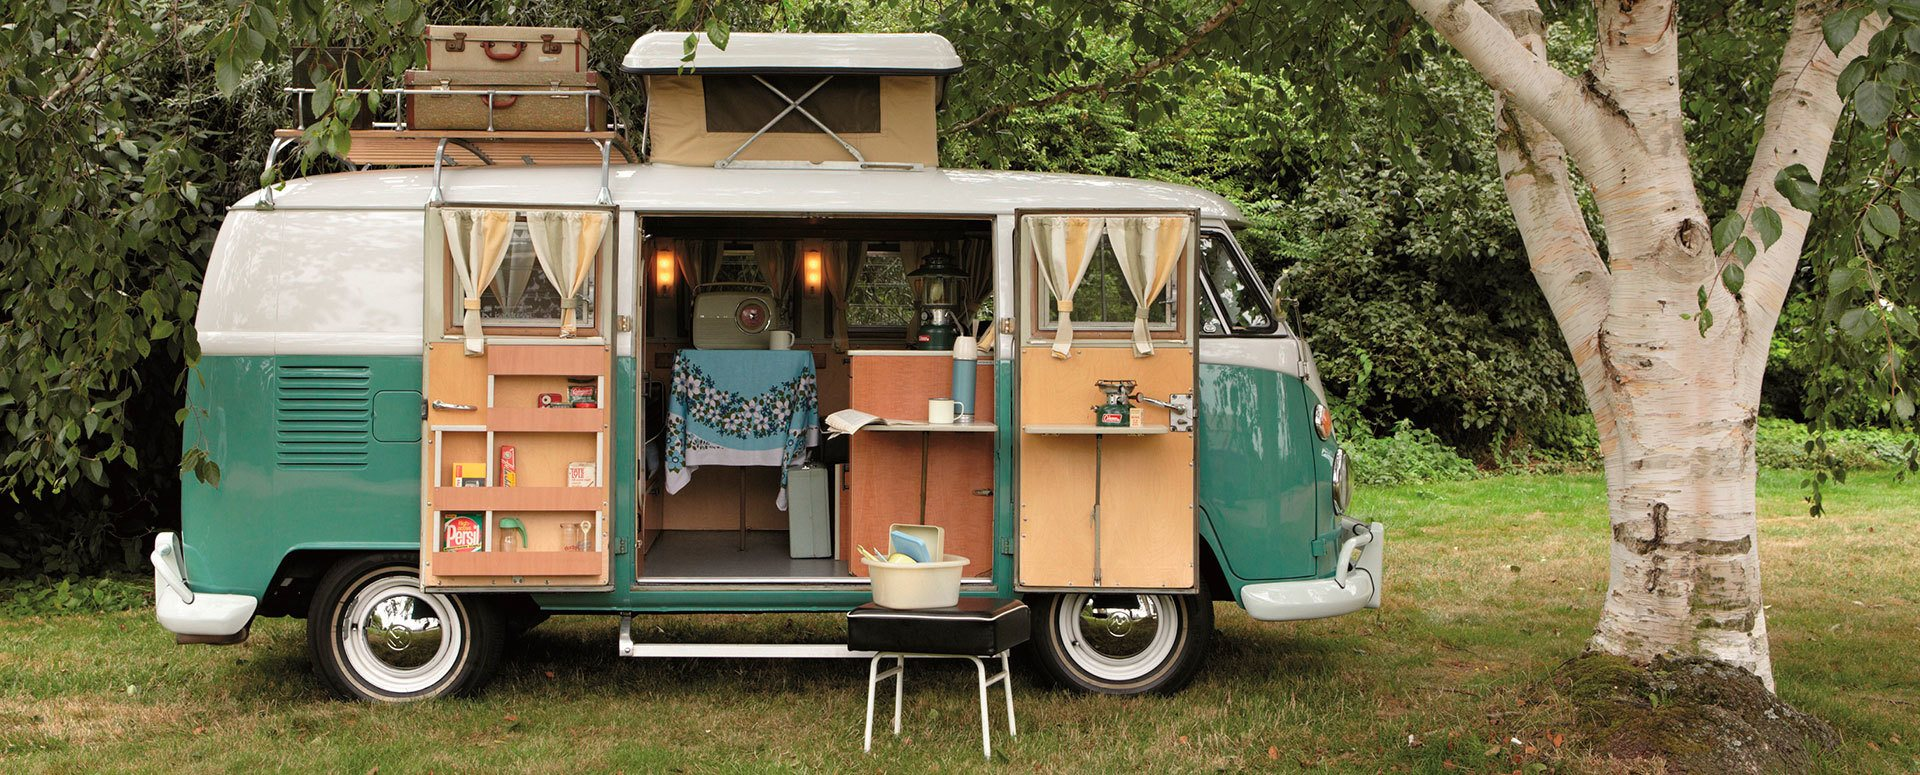 11 Must Have Campervan Accessories For Stress Free Adventures